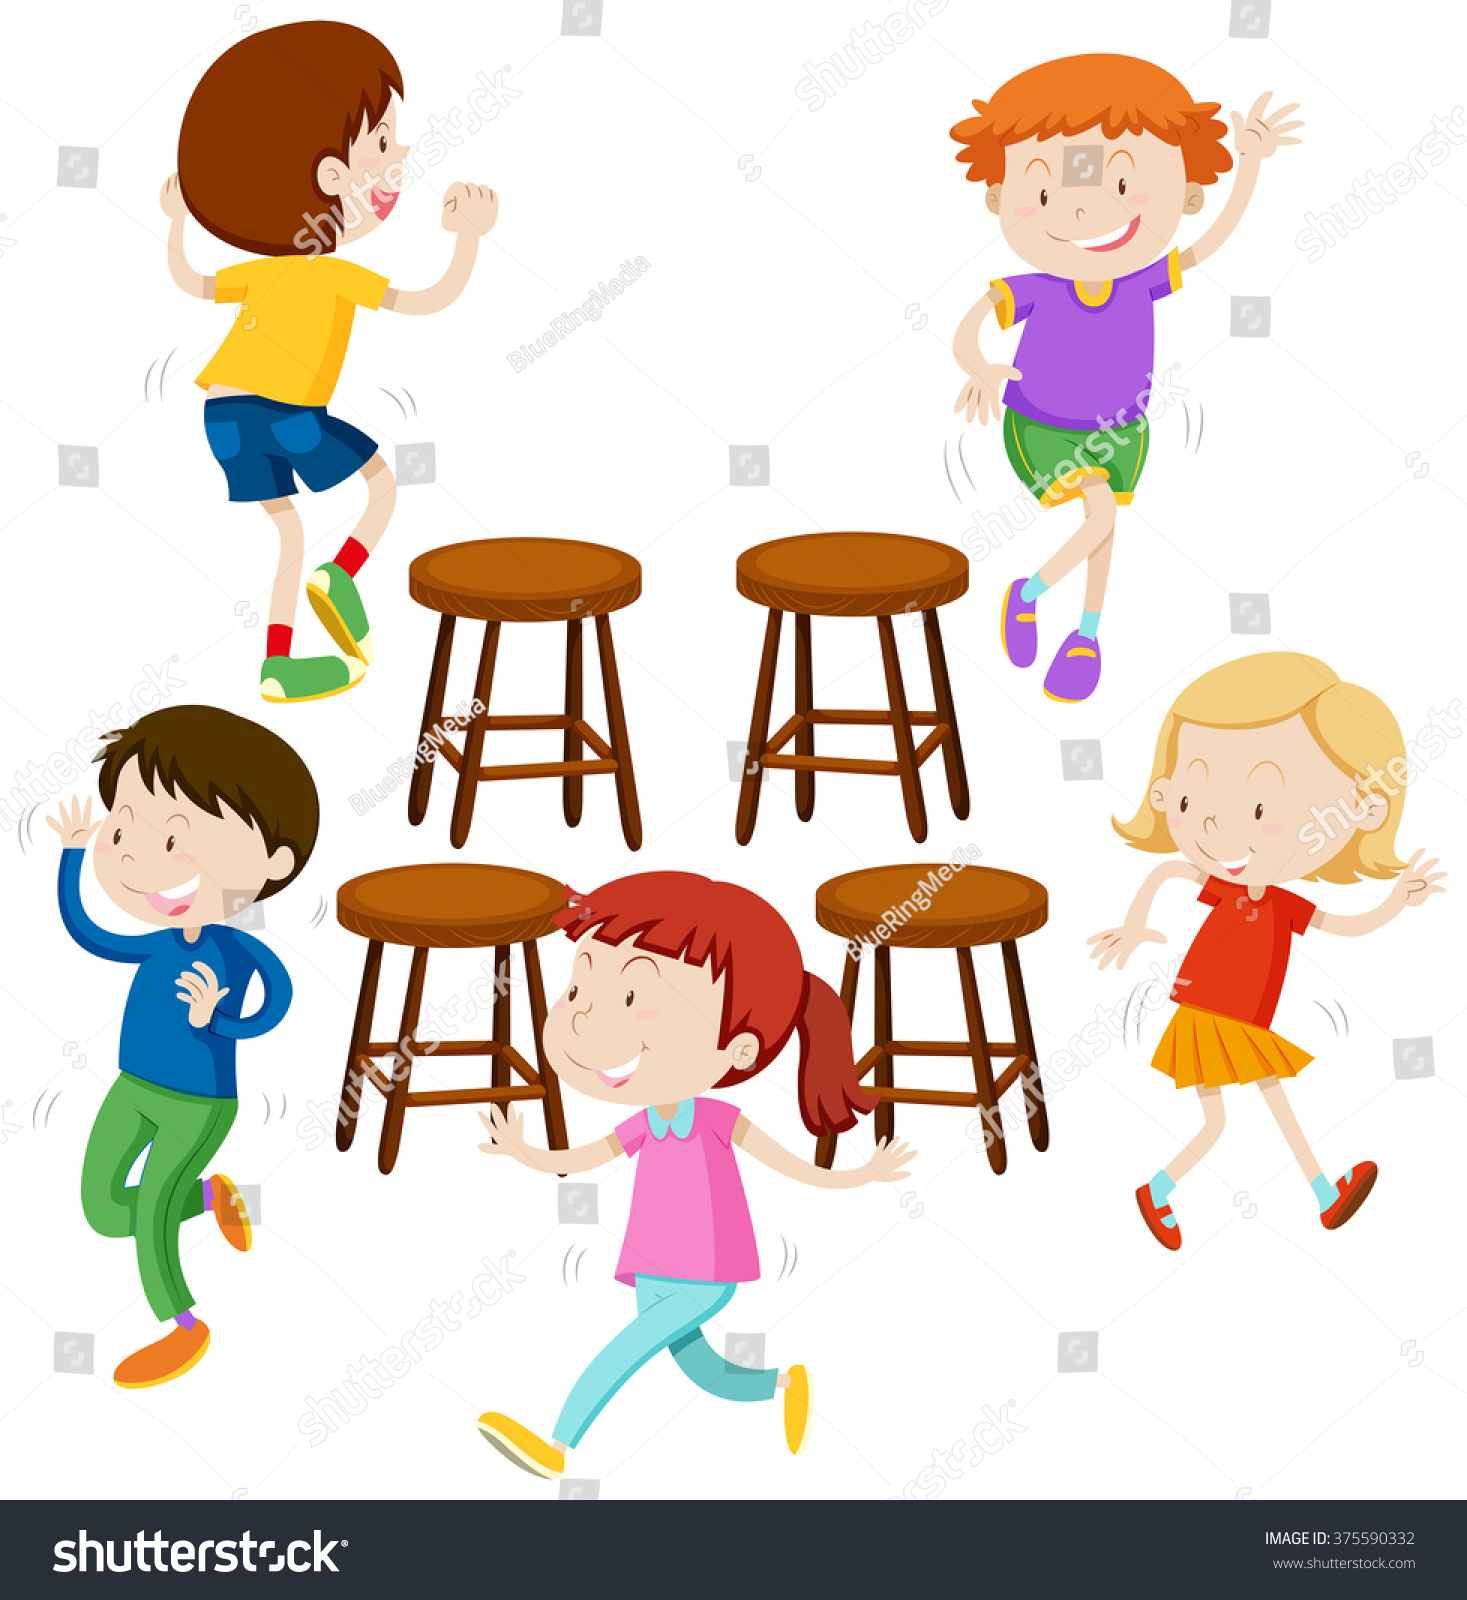 Music Chair Children Playing Music Chairs Illustration Stock Vector